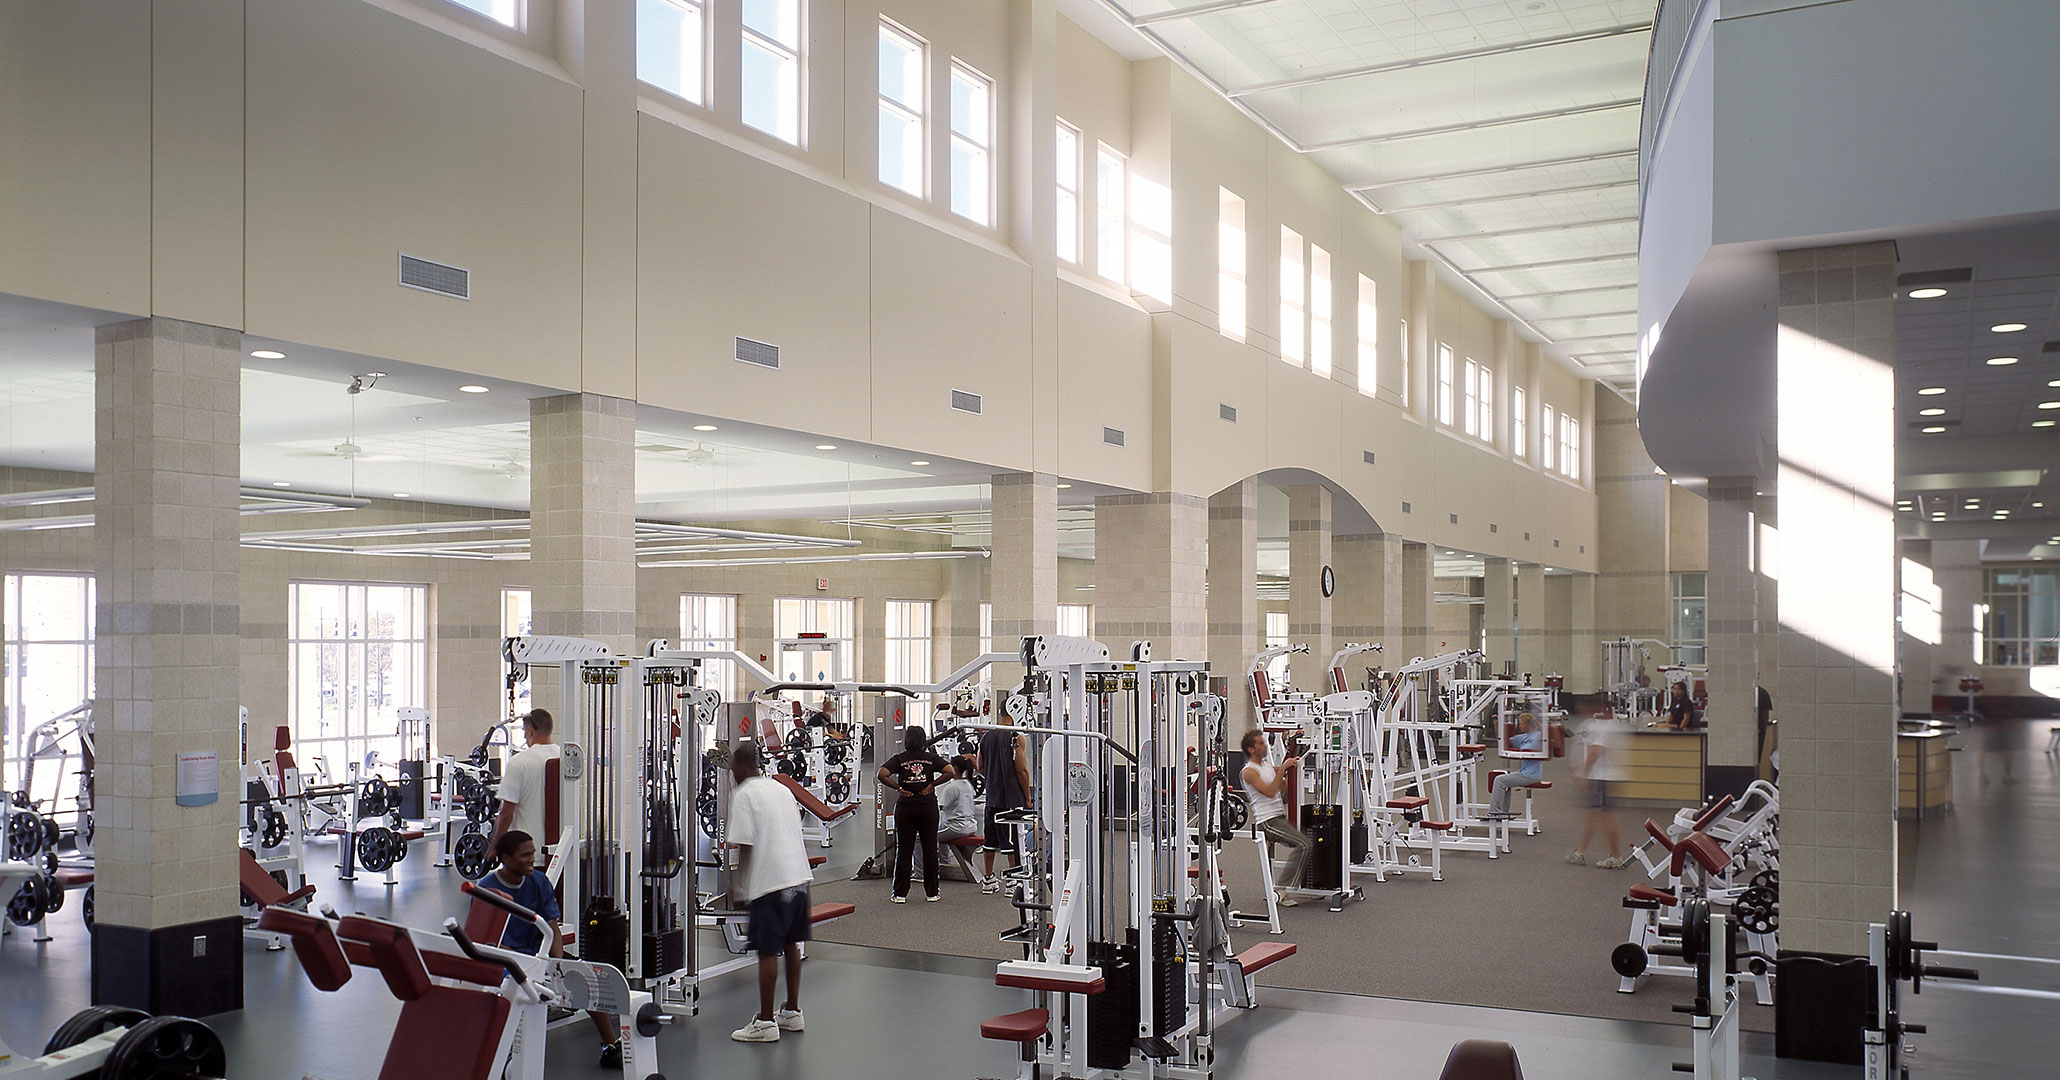 University of South Carolina and Boudreaux architects designed student gym on the corner of Assembly and Blossom Street.